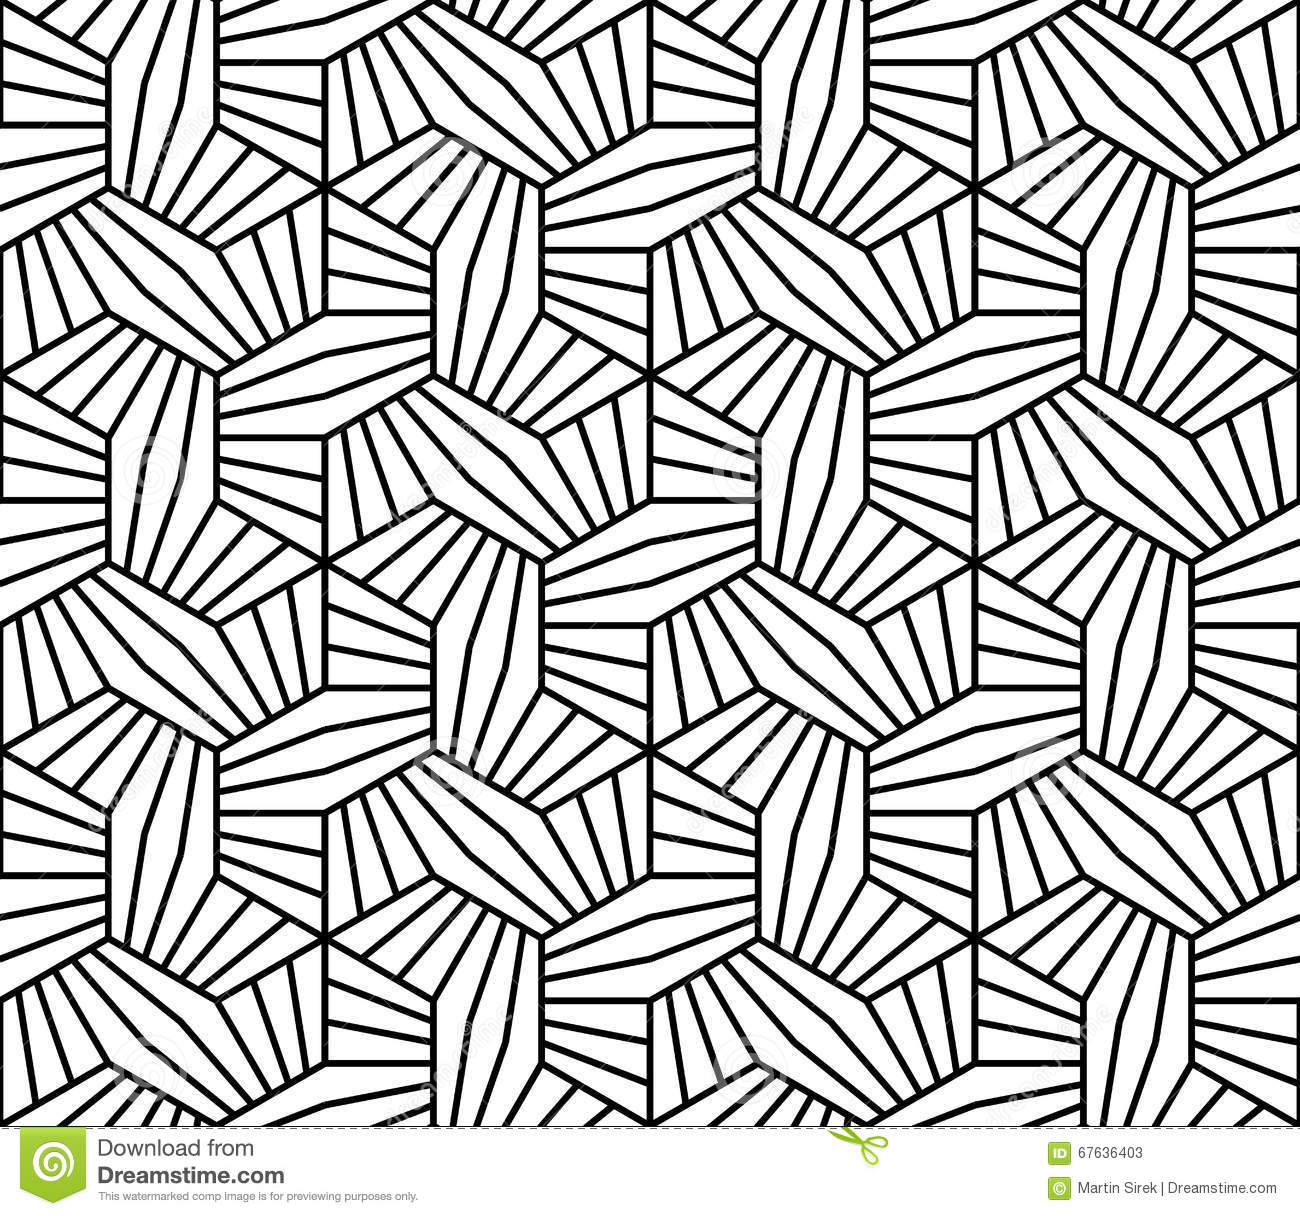 Koi Fish Coloring Pages as well Royalty Free Stock Photography Seamless Geometric Pattern Cubes File Eps Format Image36236237 moreover 13299761376795252 additionally Coloring Pages Of Peace Love And Happiness together with 306807793339965568. on cool mosaic patterns